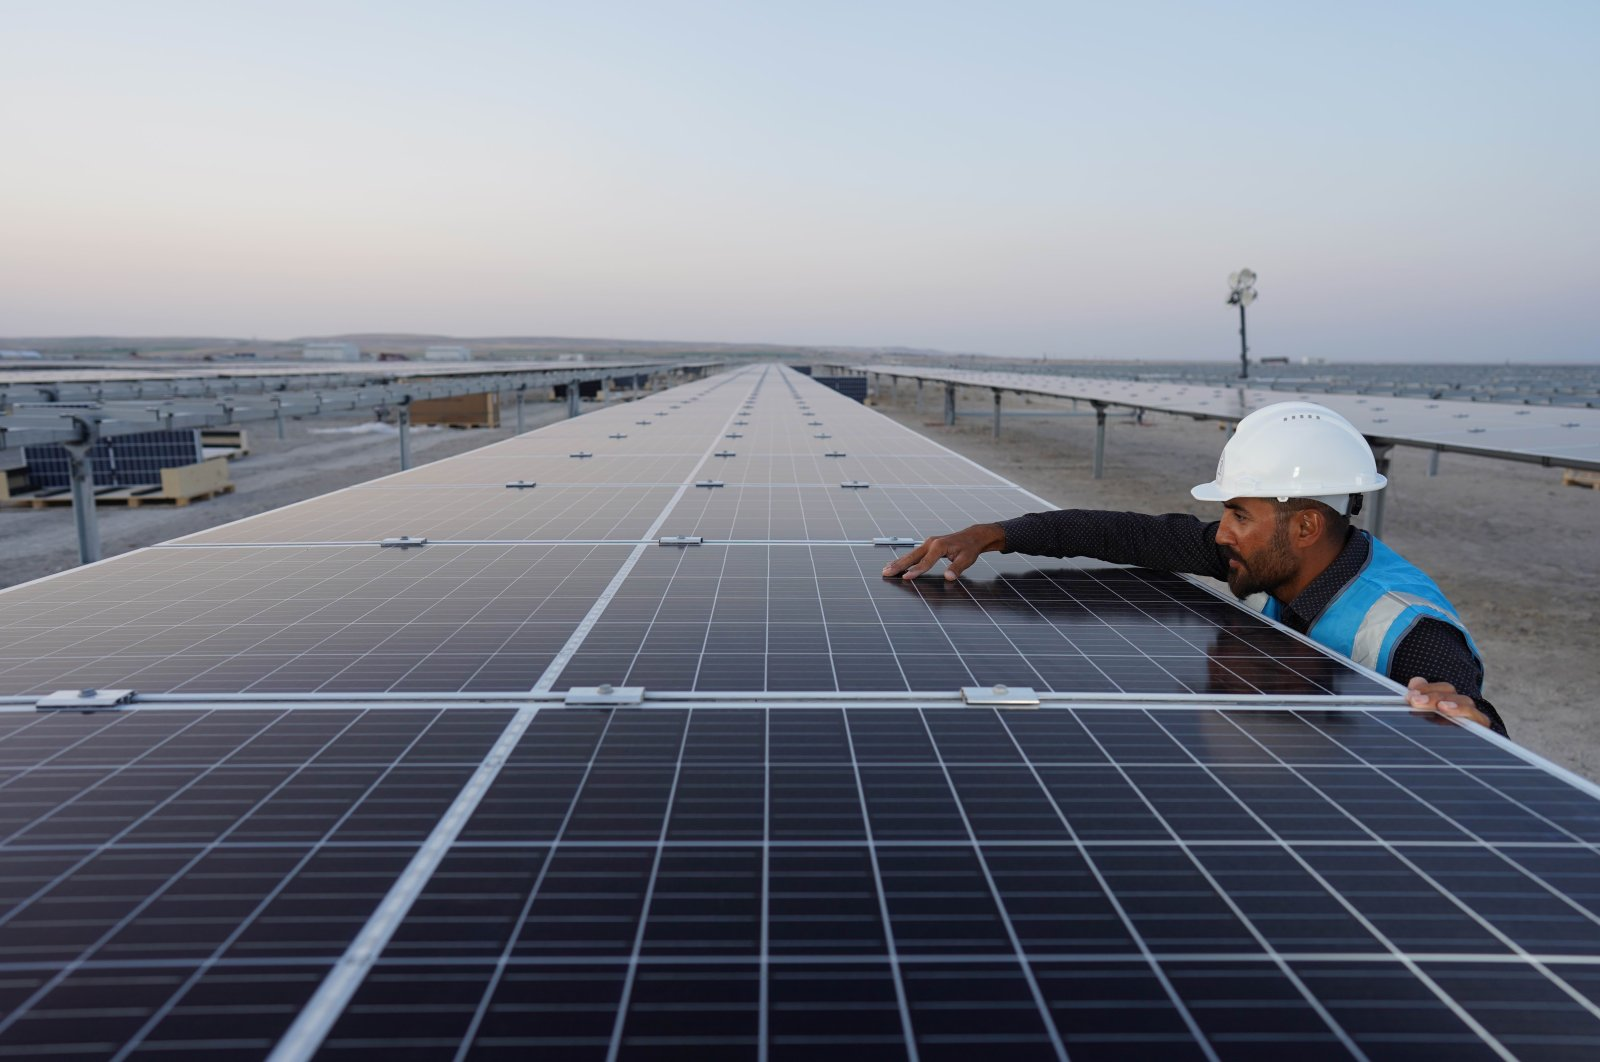 Solar panels at a solar power plant run by Kalyon Holding, in Konya, central Turkey, Sept. 29, 2020. (IHA Photo)